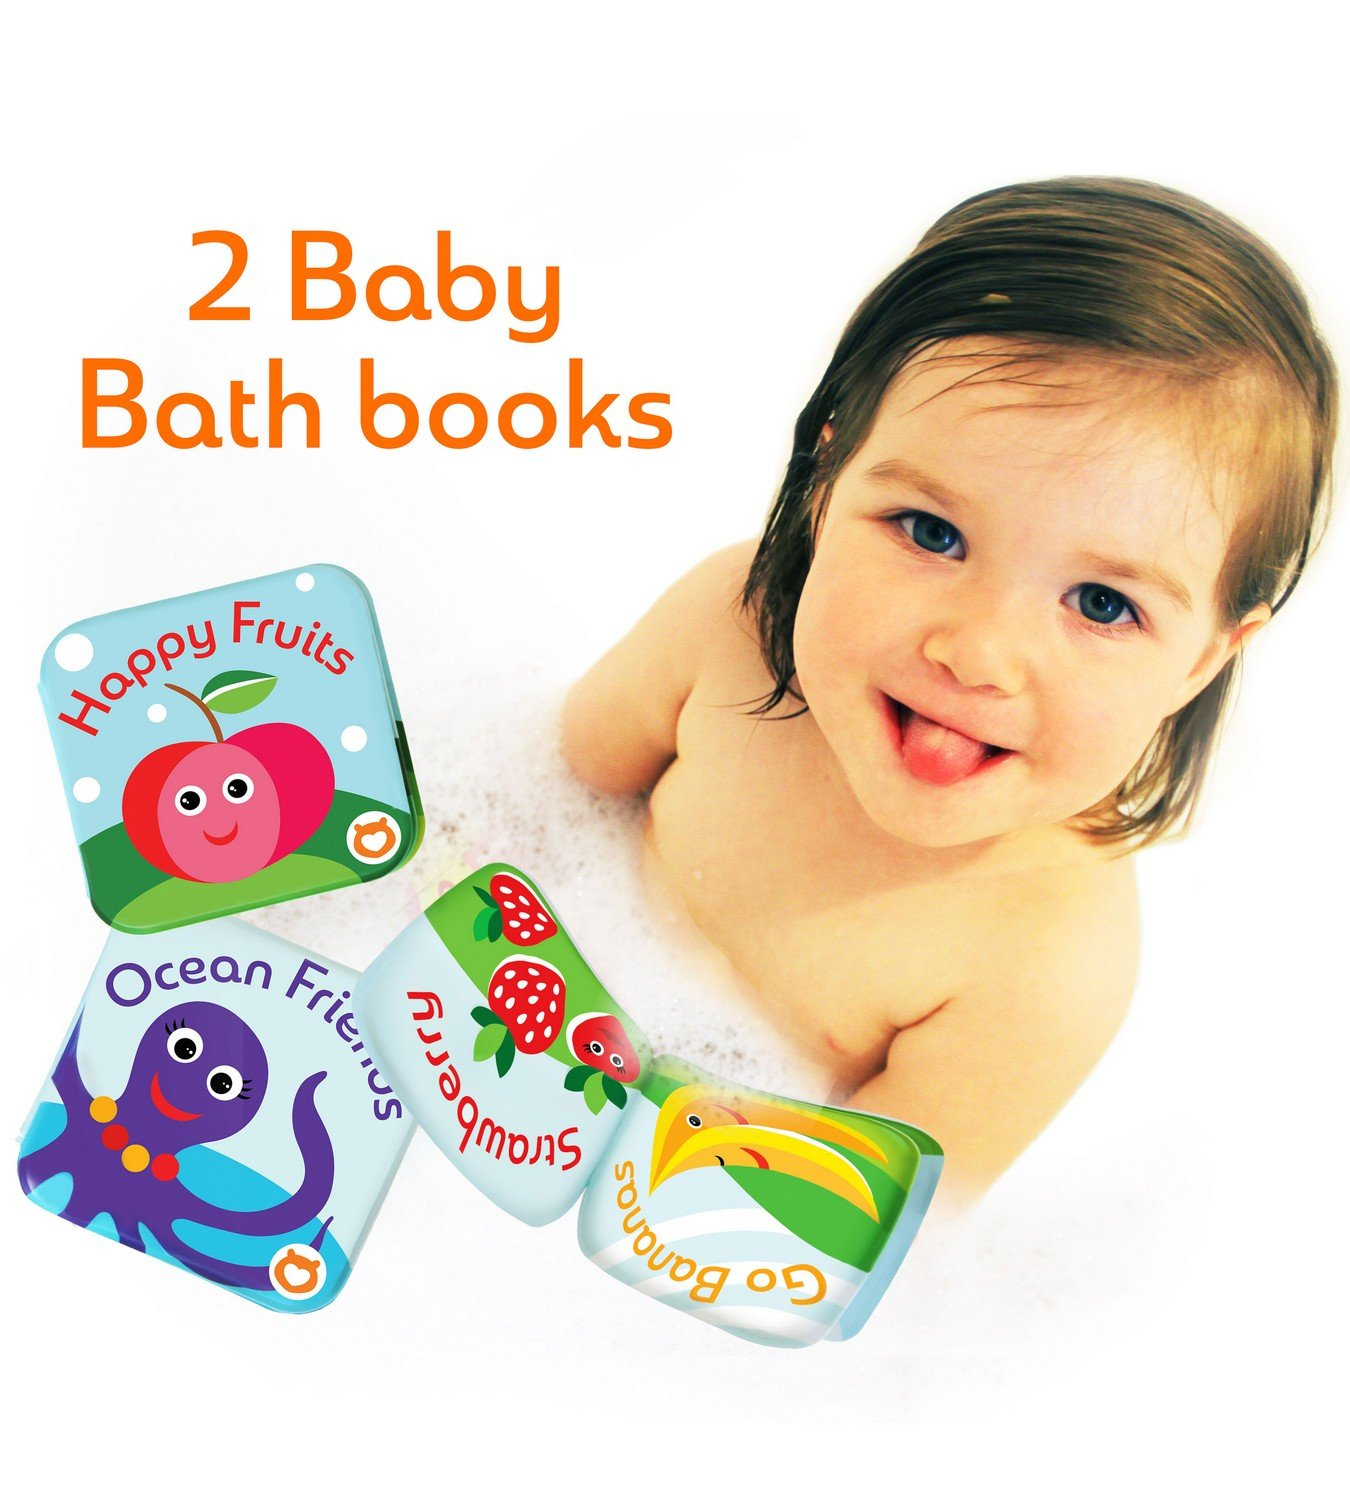 "Waterproof Educational Toy for Baby or Toddler by Baby Bibi Bath Time Learn /& Play Floating Kids Books for Bathtub Set of 2 3.5/""x3.5/"" Fruits /& Sea Animals"